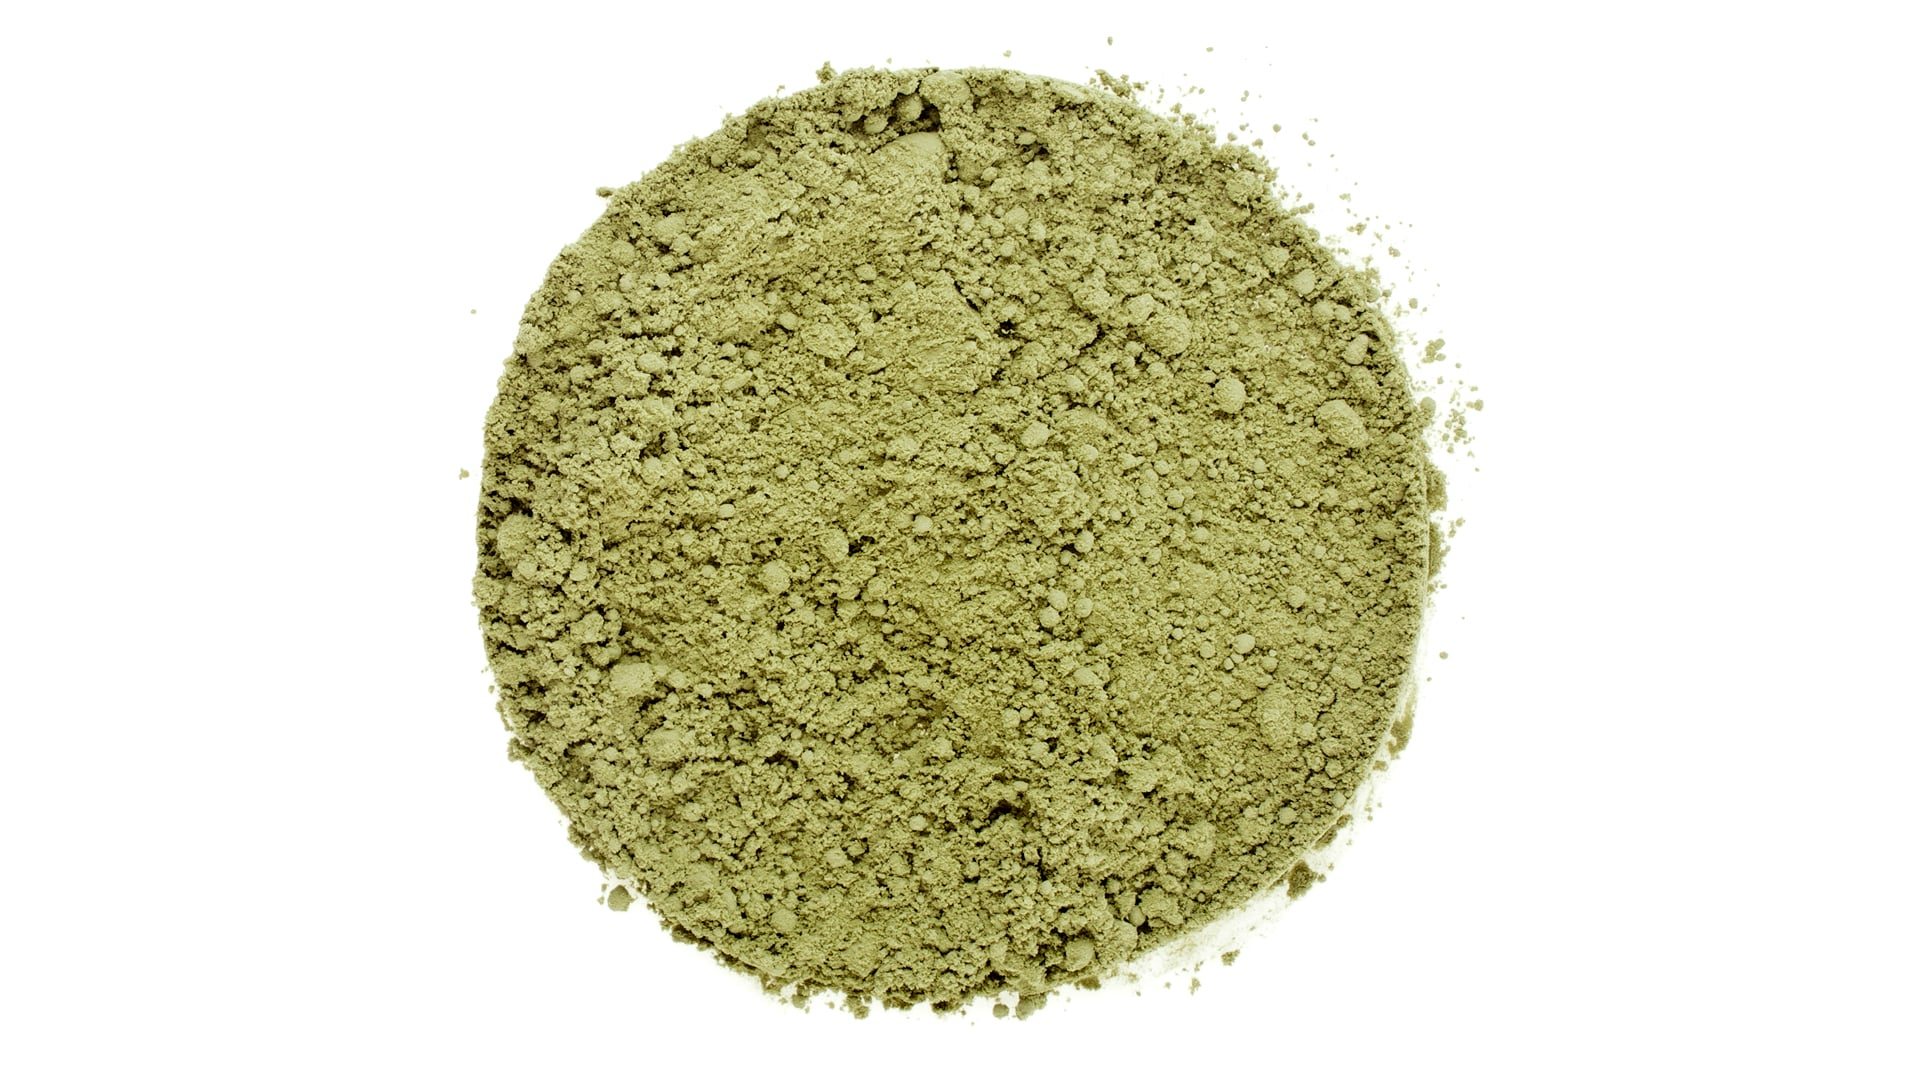 Gold Bali Kratom Strain Effects Dosage Reviews And Where To Buy